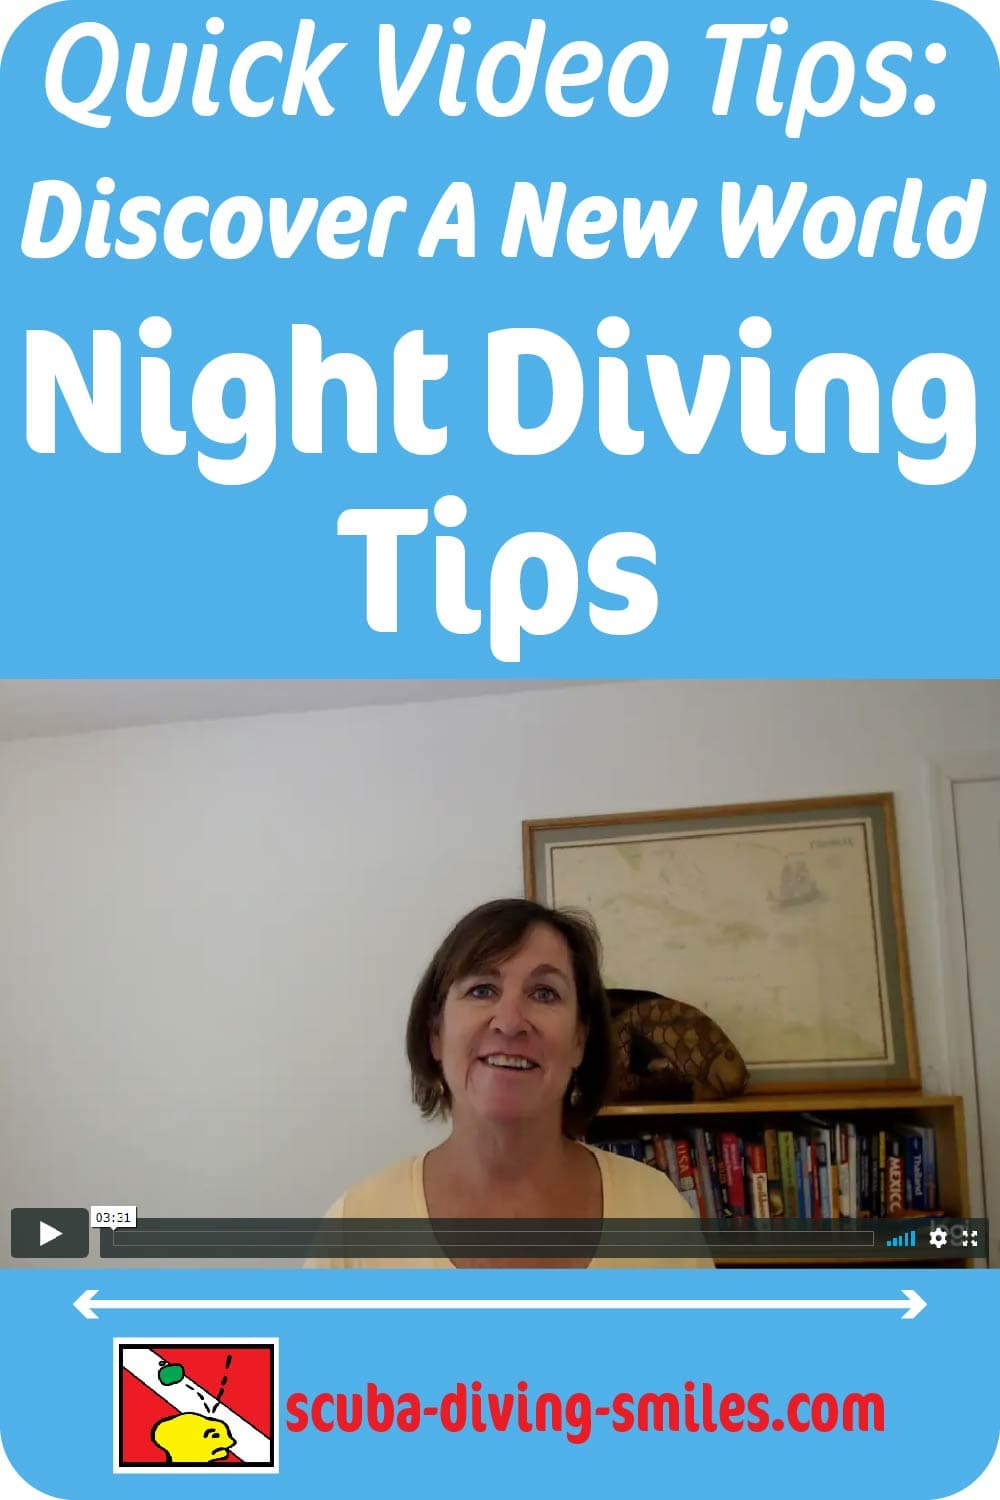 Night scuba diving Tips